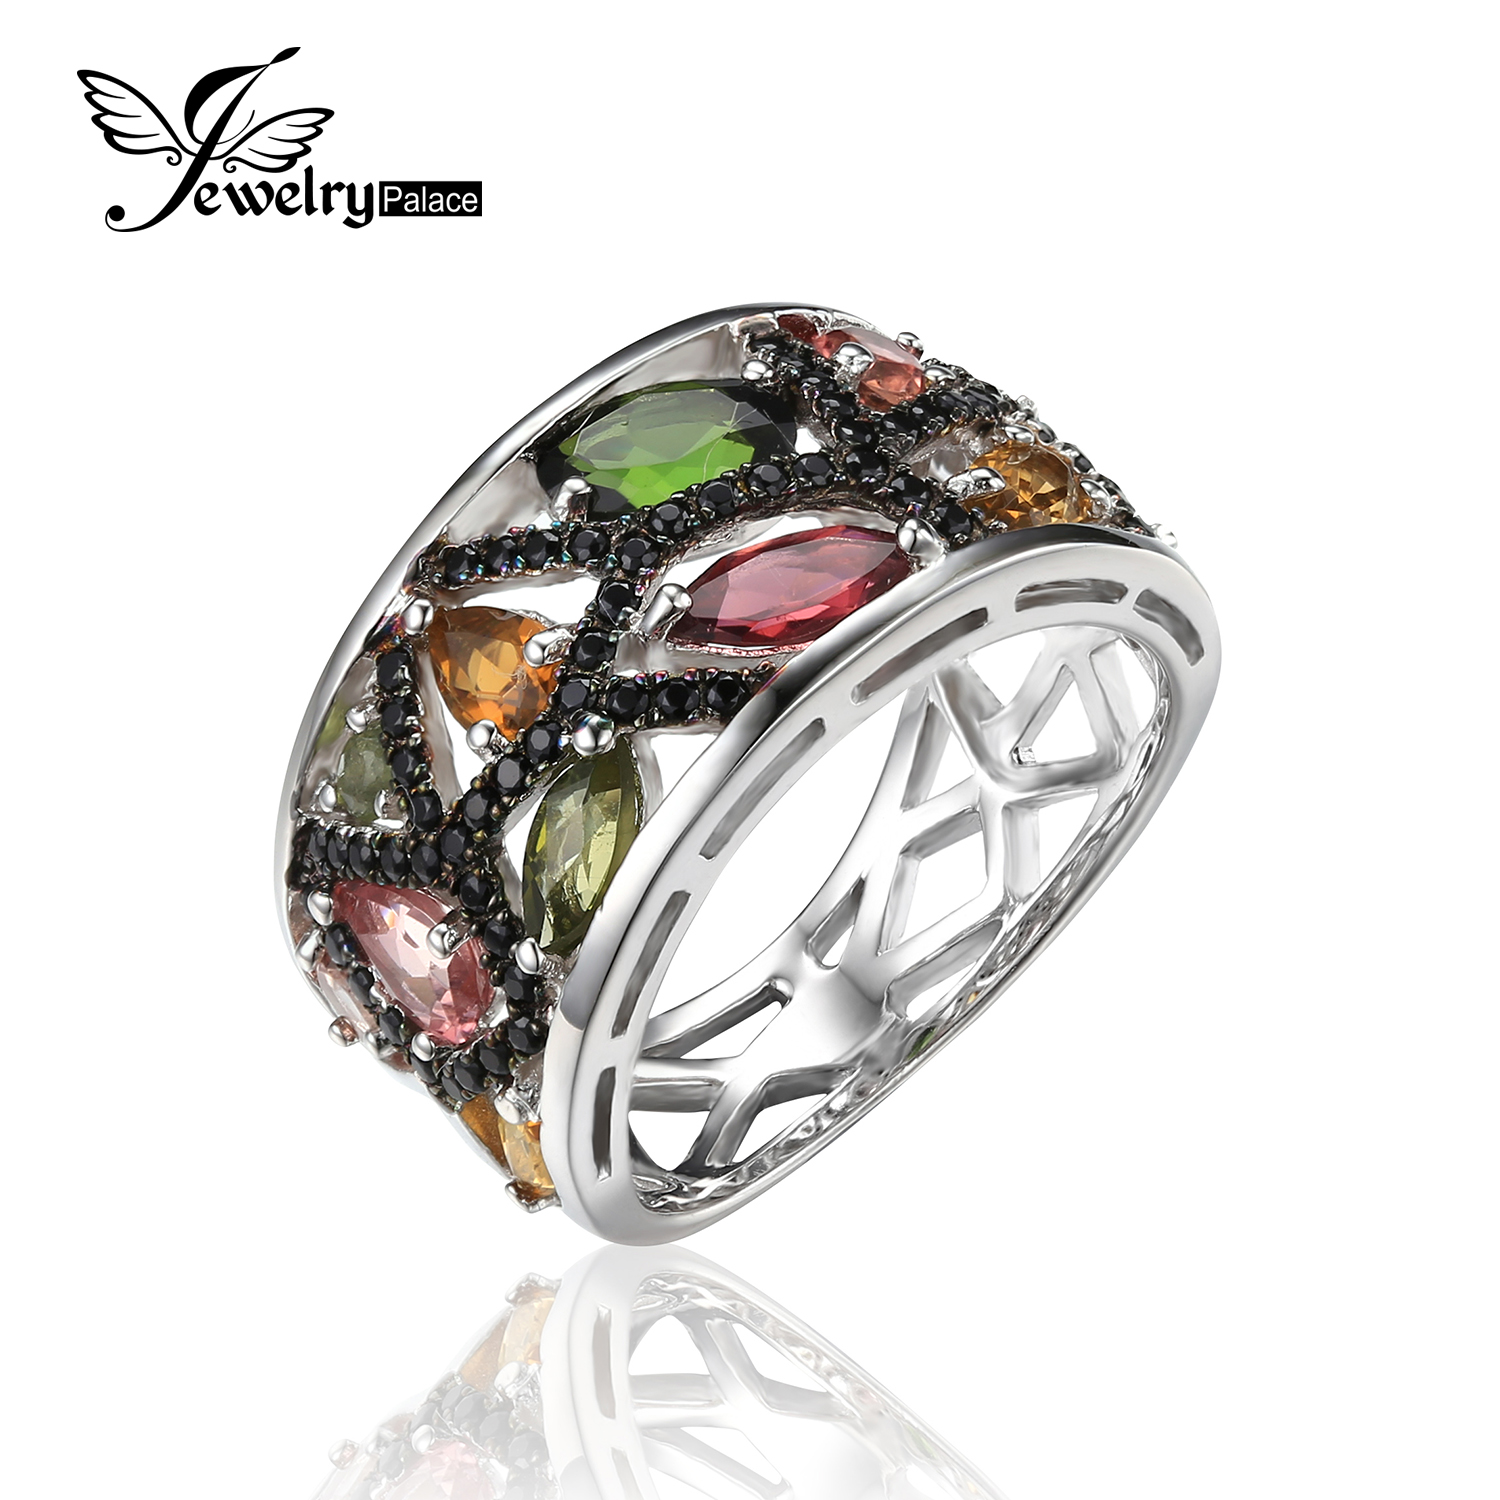 JewelryPalace Halloween 2 3ct Multicolor Genuine Tourmaline Black Spinel Cocktail font b Ring b font 925